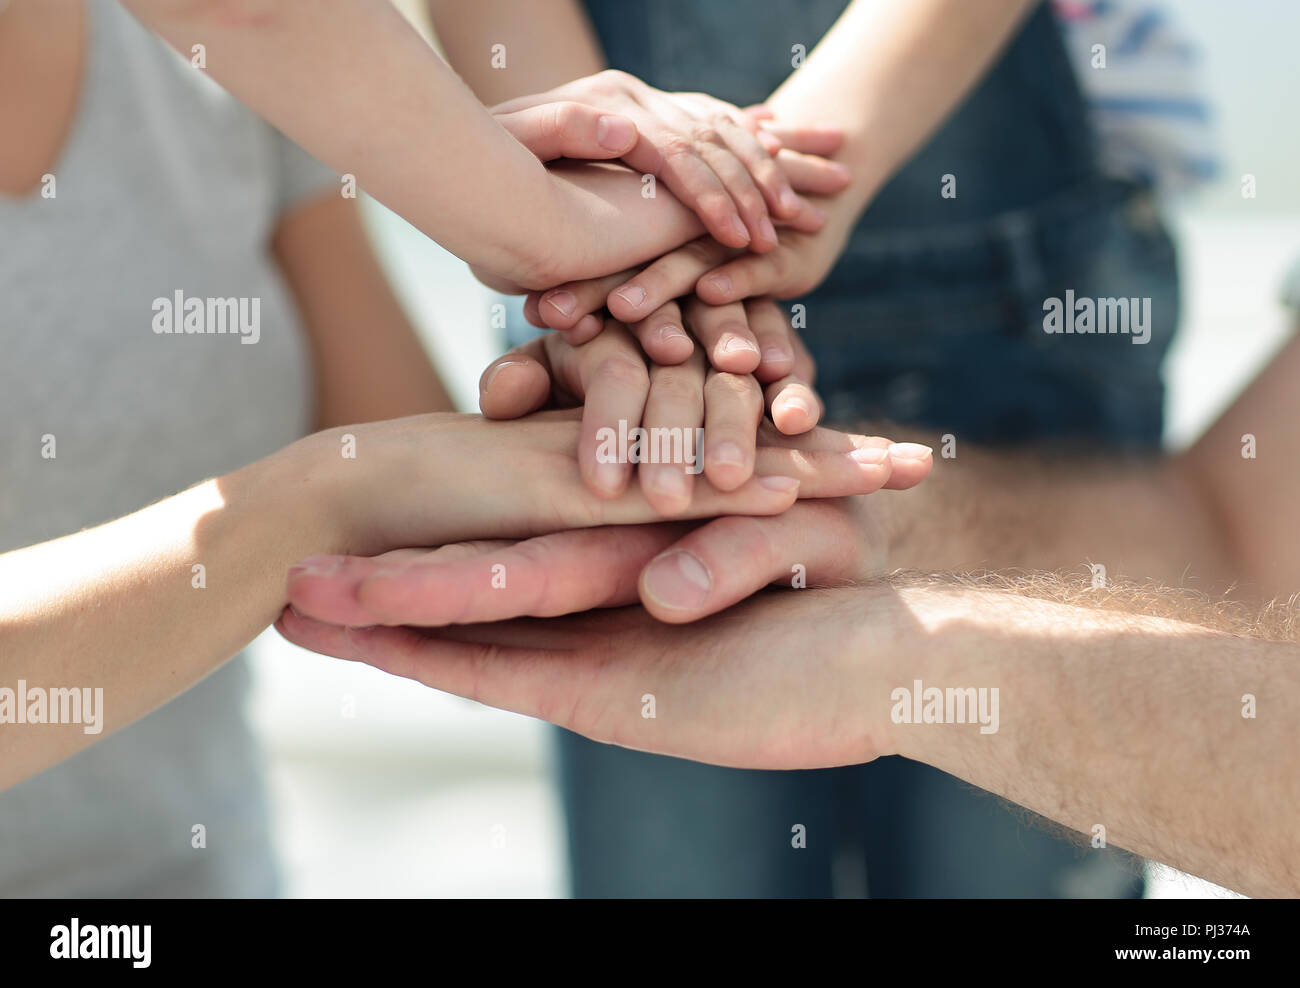 close up.family hands folded together - Stock Image